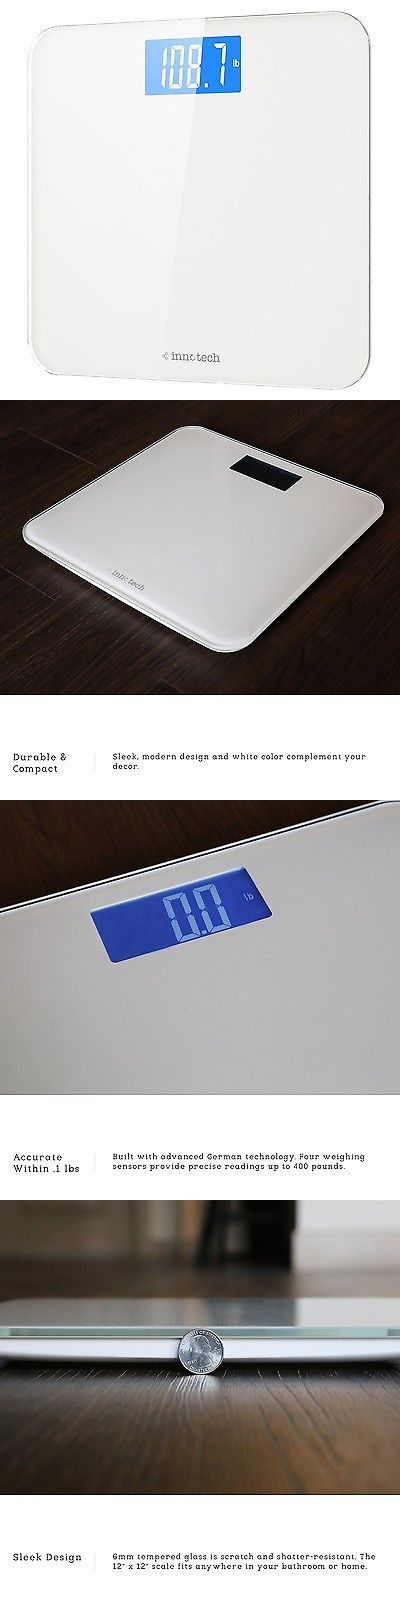 Scales 34088: Modern Bathroom Scale Automated Calibration Durable Compact Weighing Sensors -> BUY IT NOW ONLY: $36.99 on eBay!